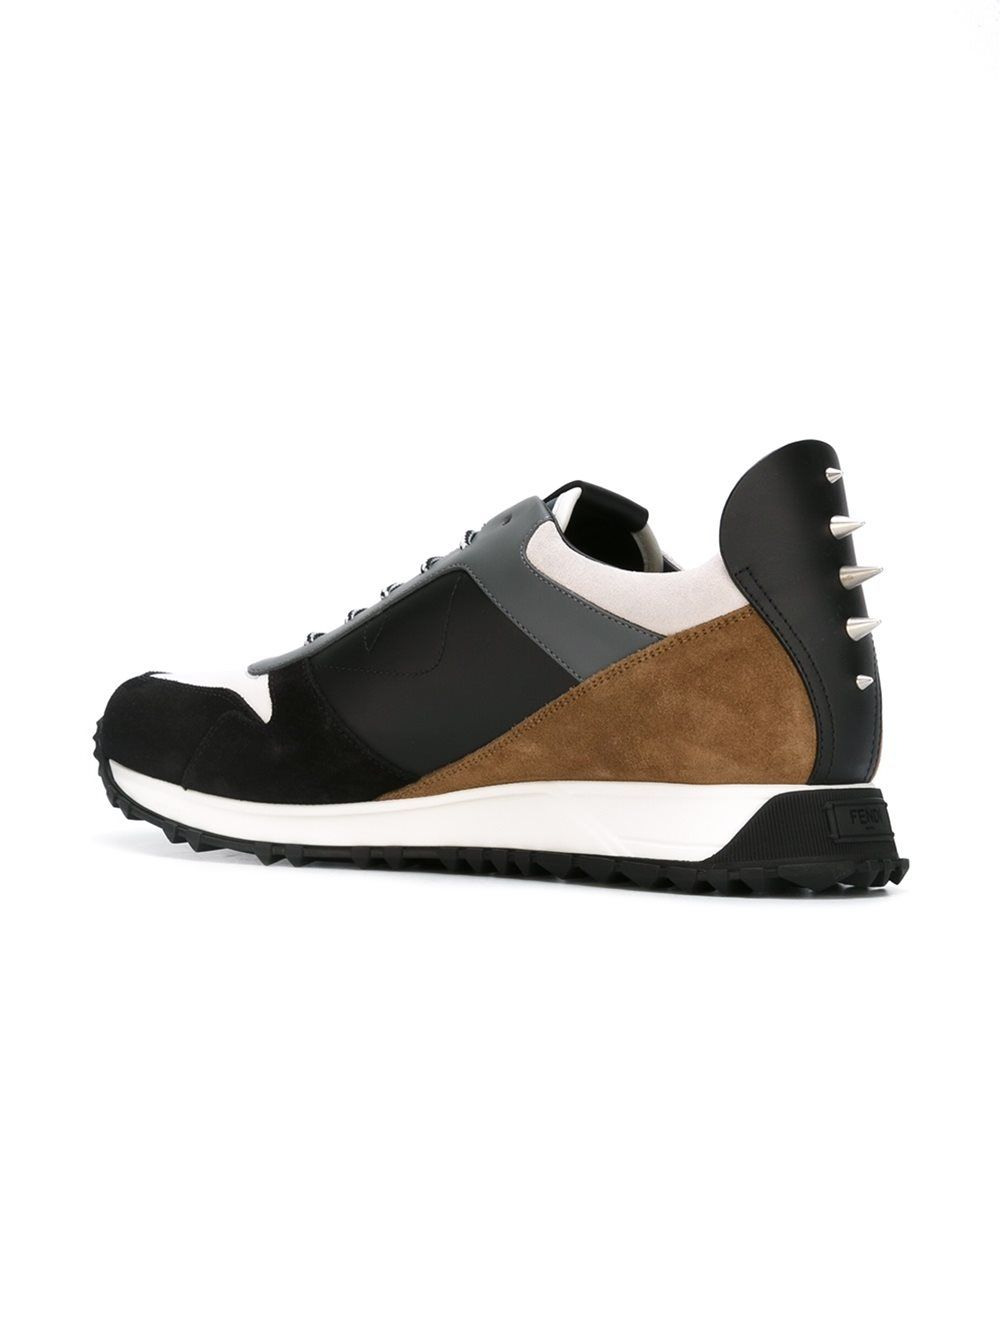 Fendi Bag Bugs sneakers   inspired shoes in 2019   Pinterest ... a25fdd30c47